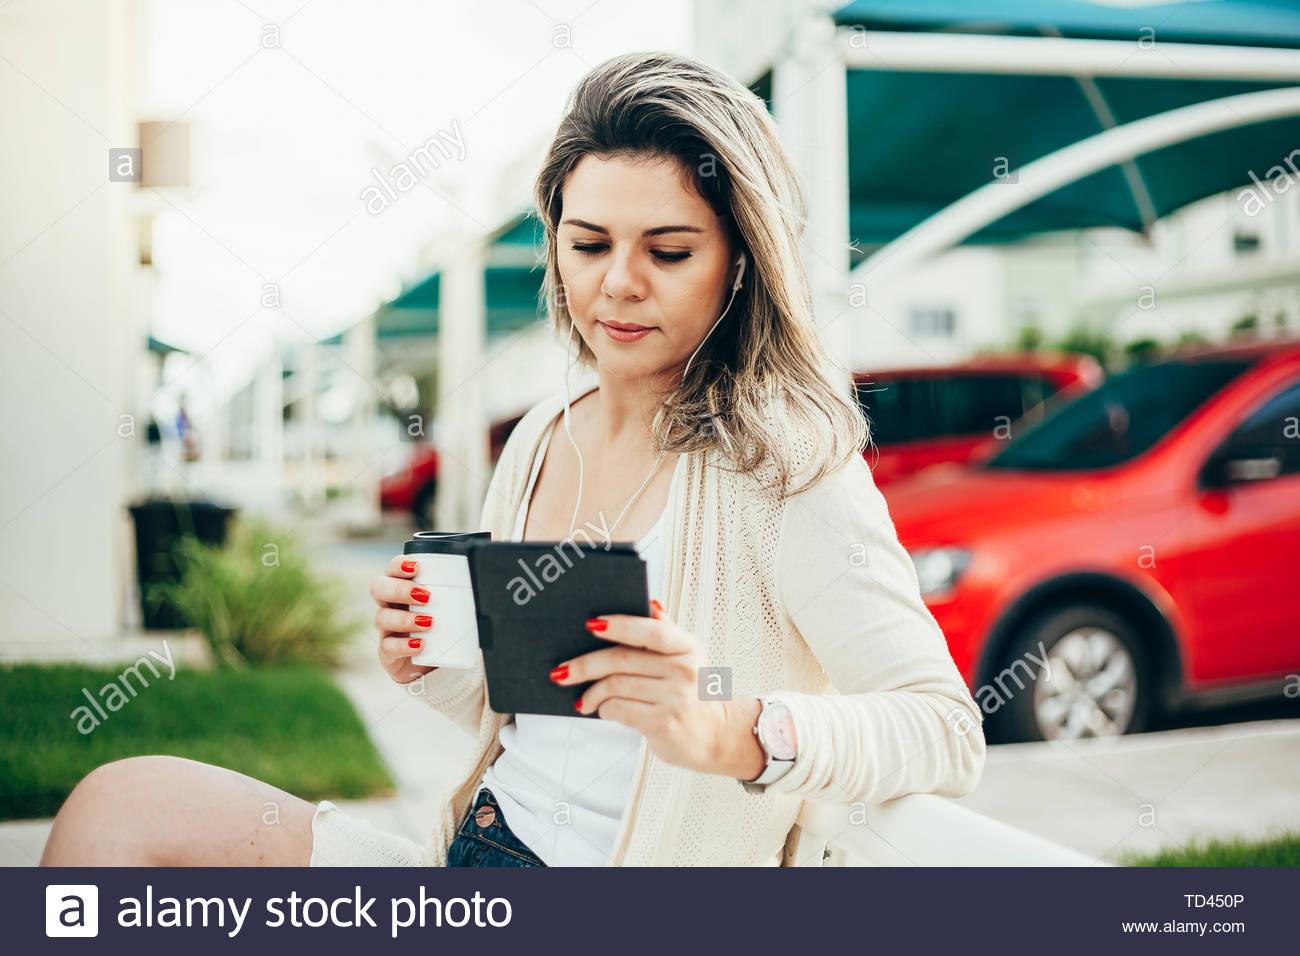 A young woman sits on a bench, holds a coffee cup in her hand and reads an e-book in the city - Stock Image